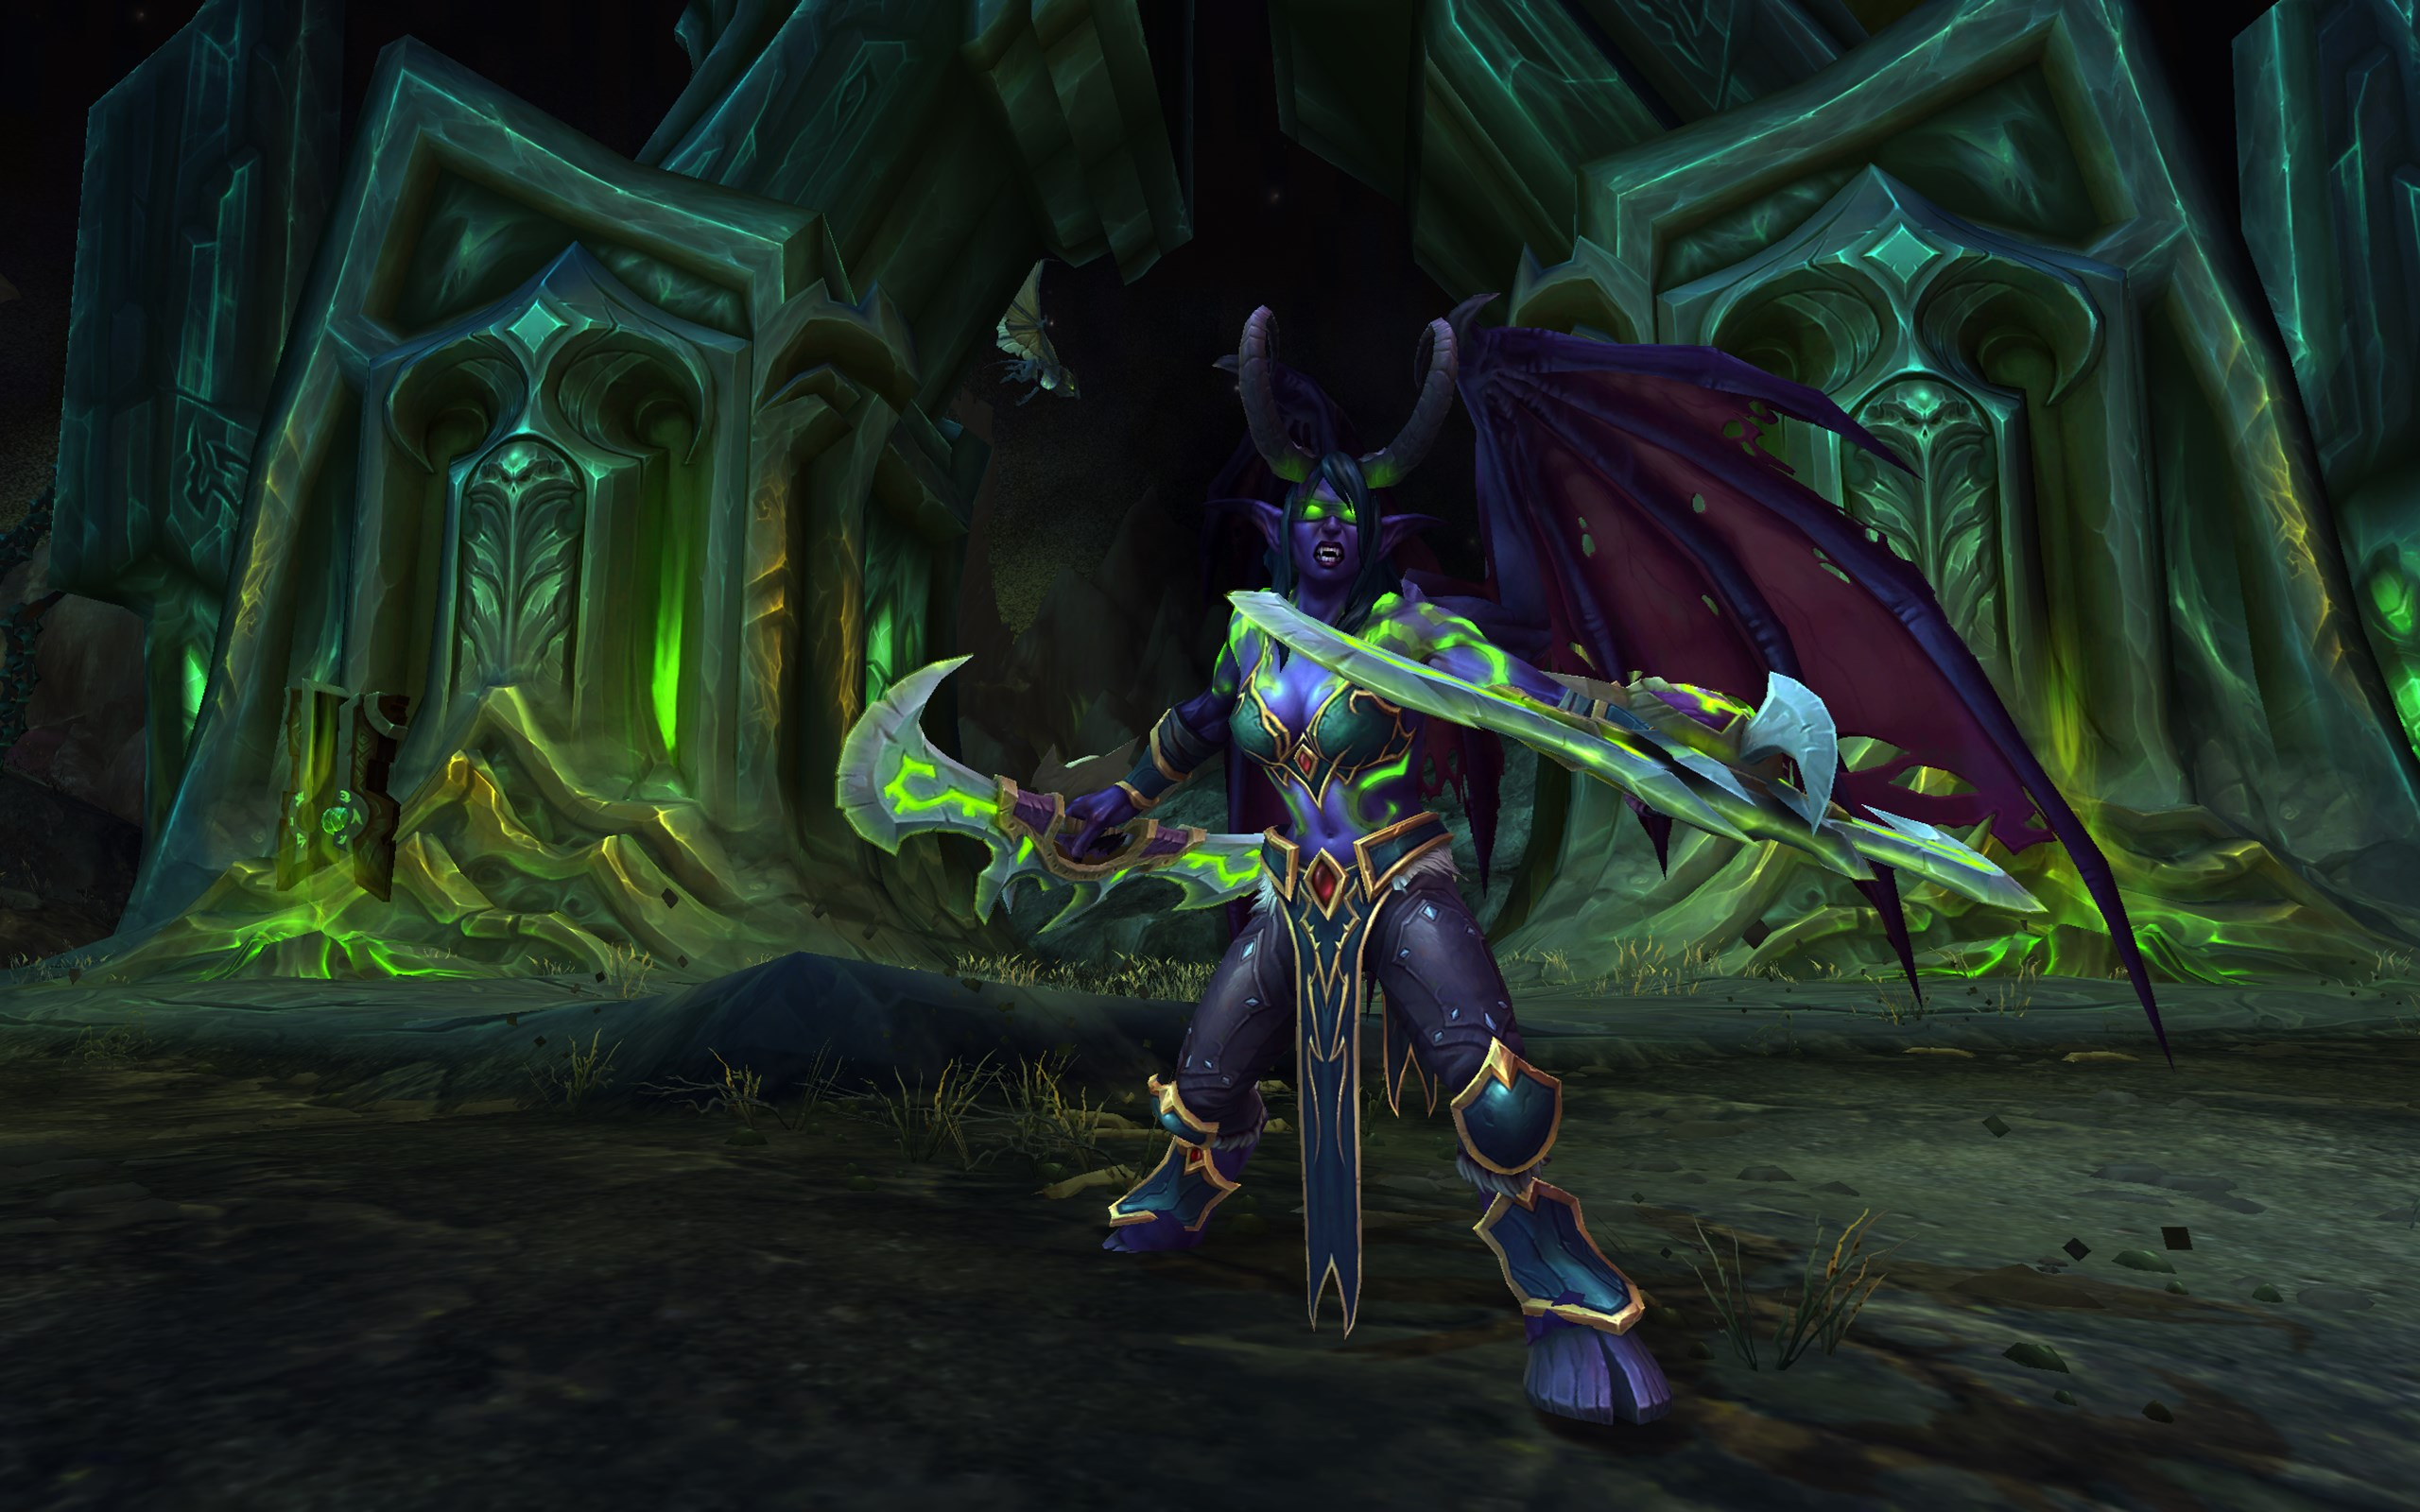 world-of-warcraft-legion-expansion-confirmed-to-arrive-in-summer